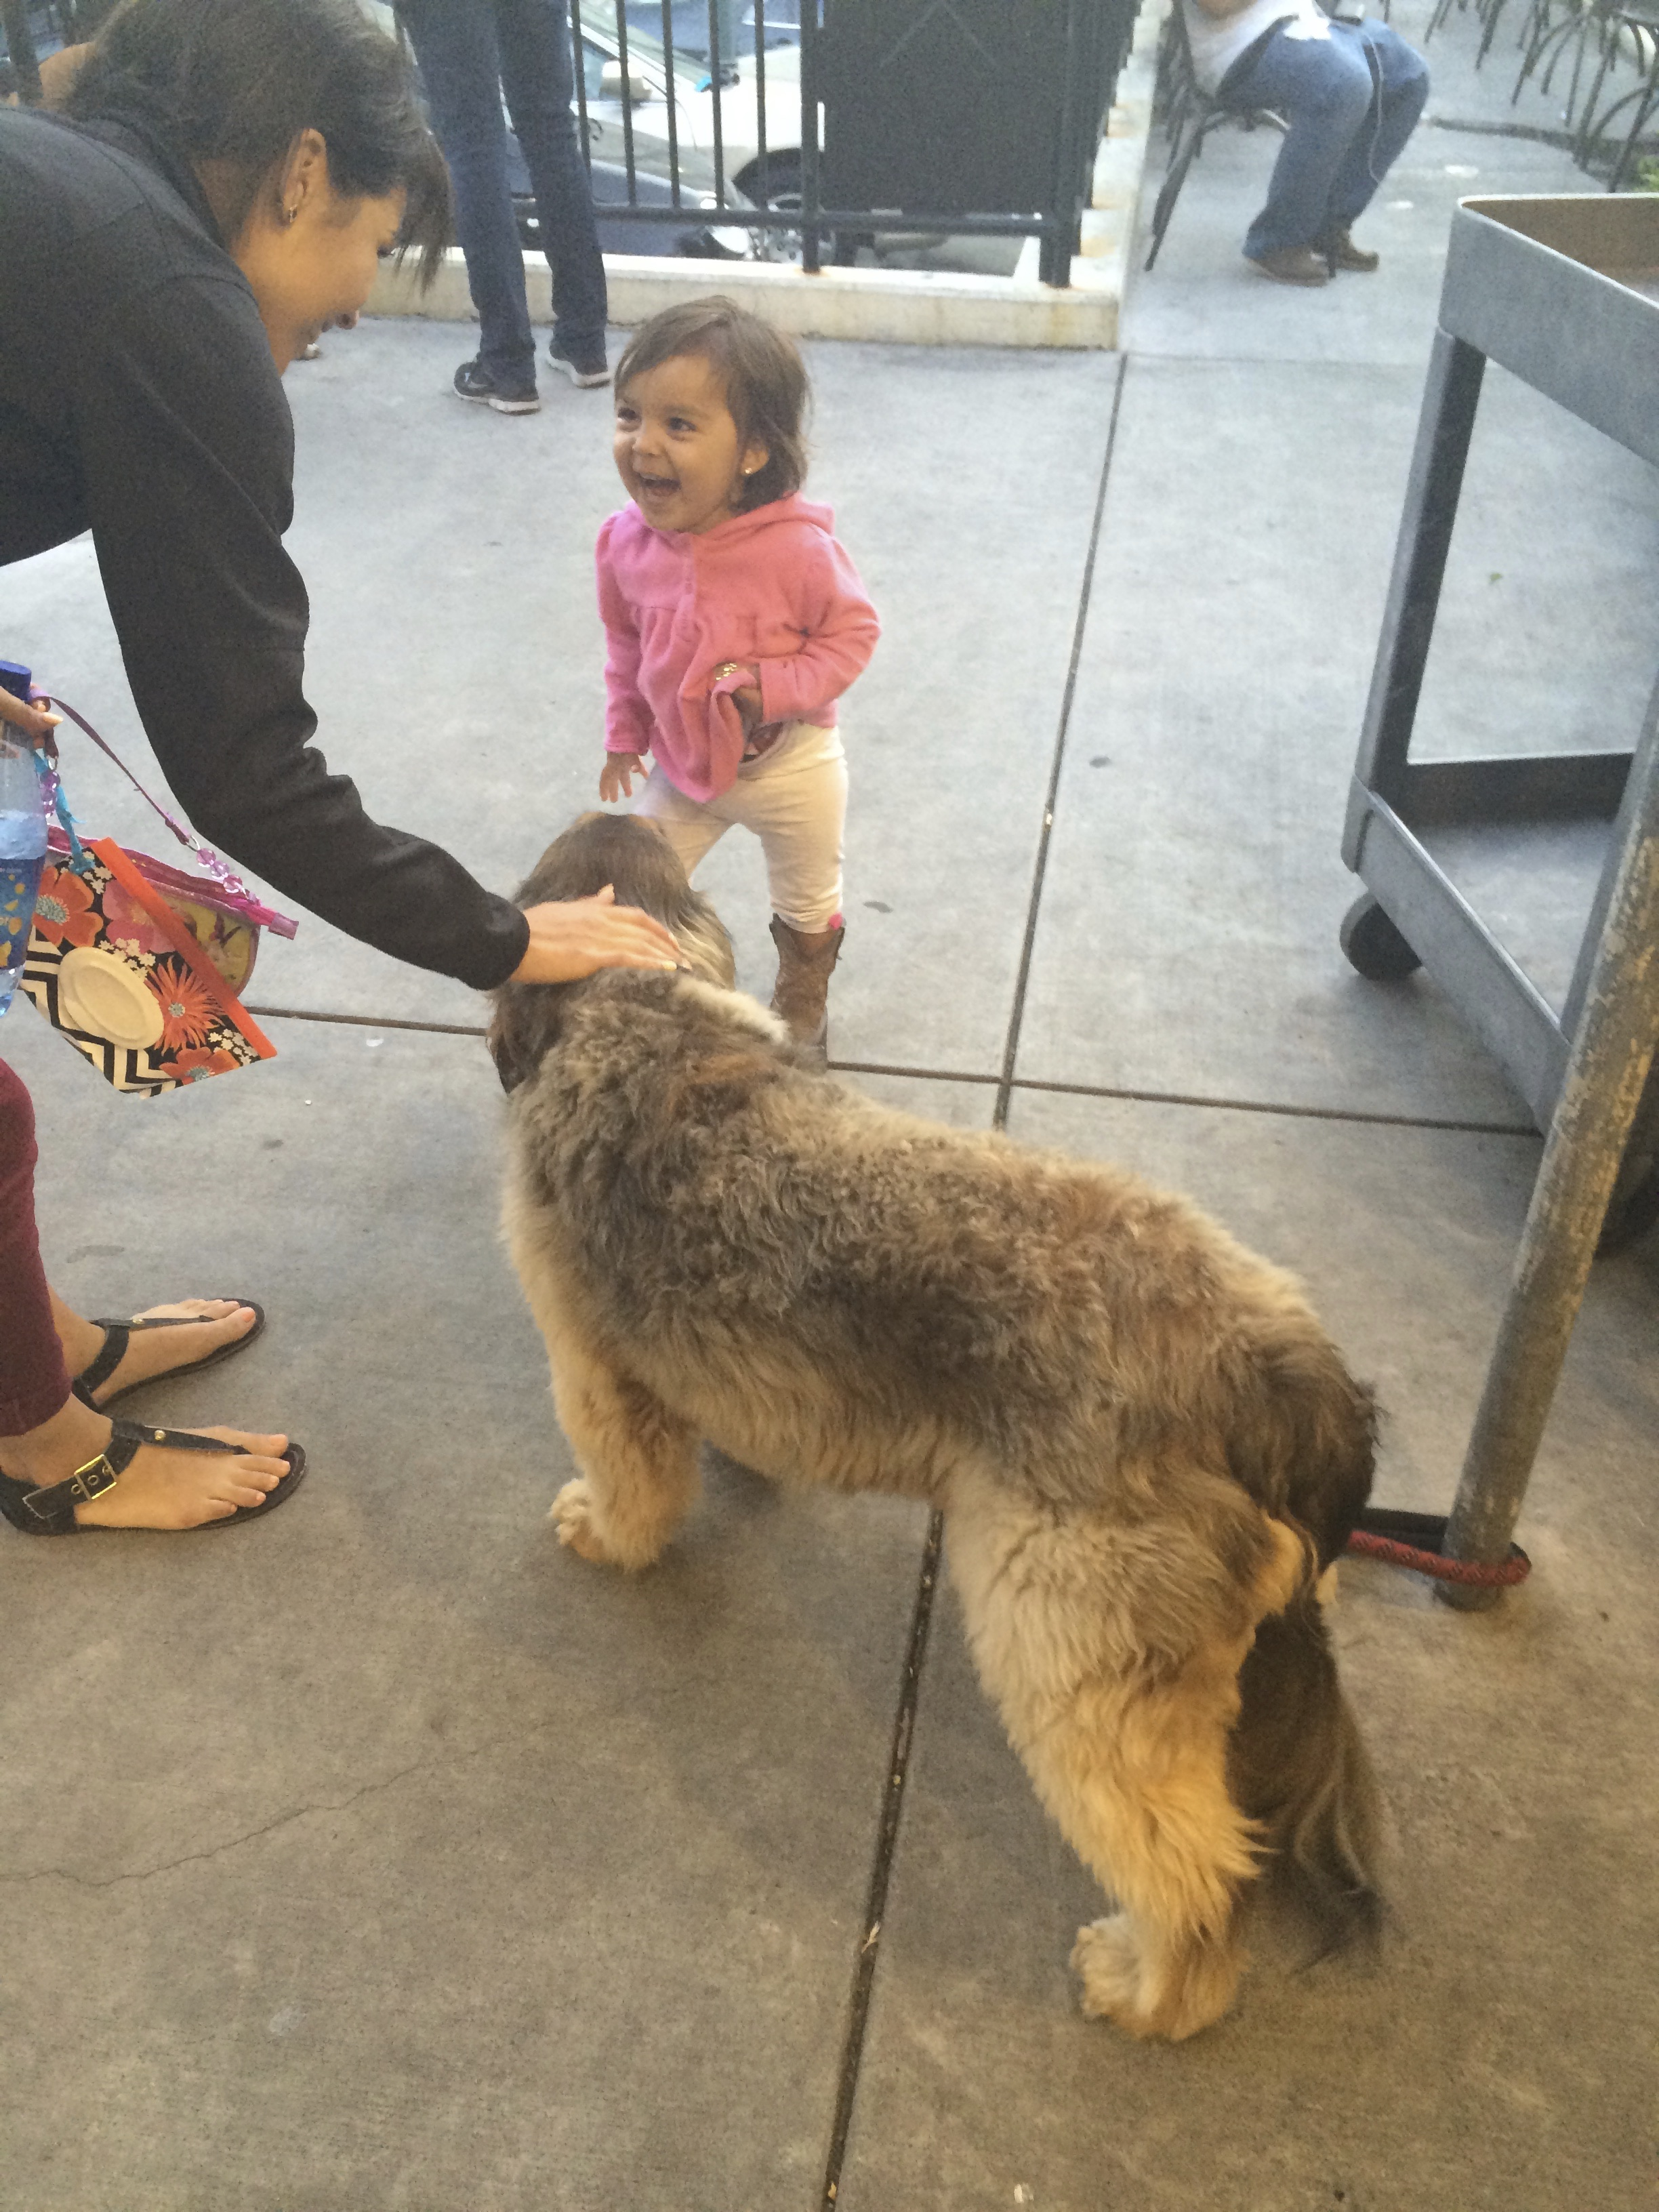 Little Girl Delightedly Greeting Unknown Mixed-Breed Dog